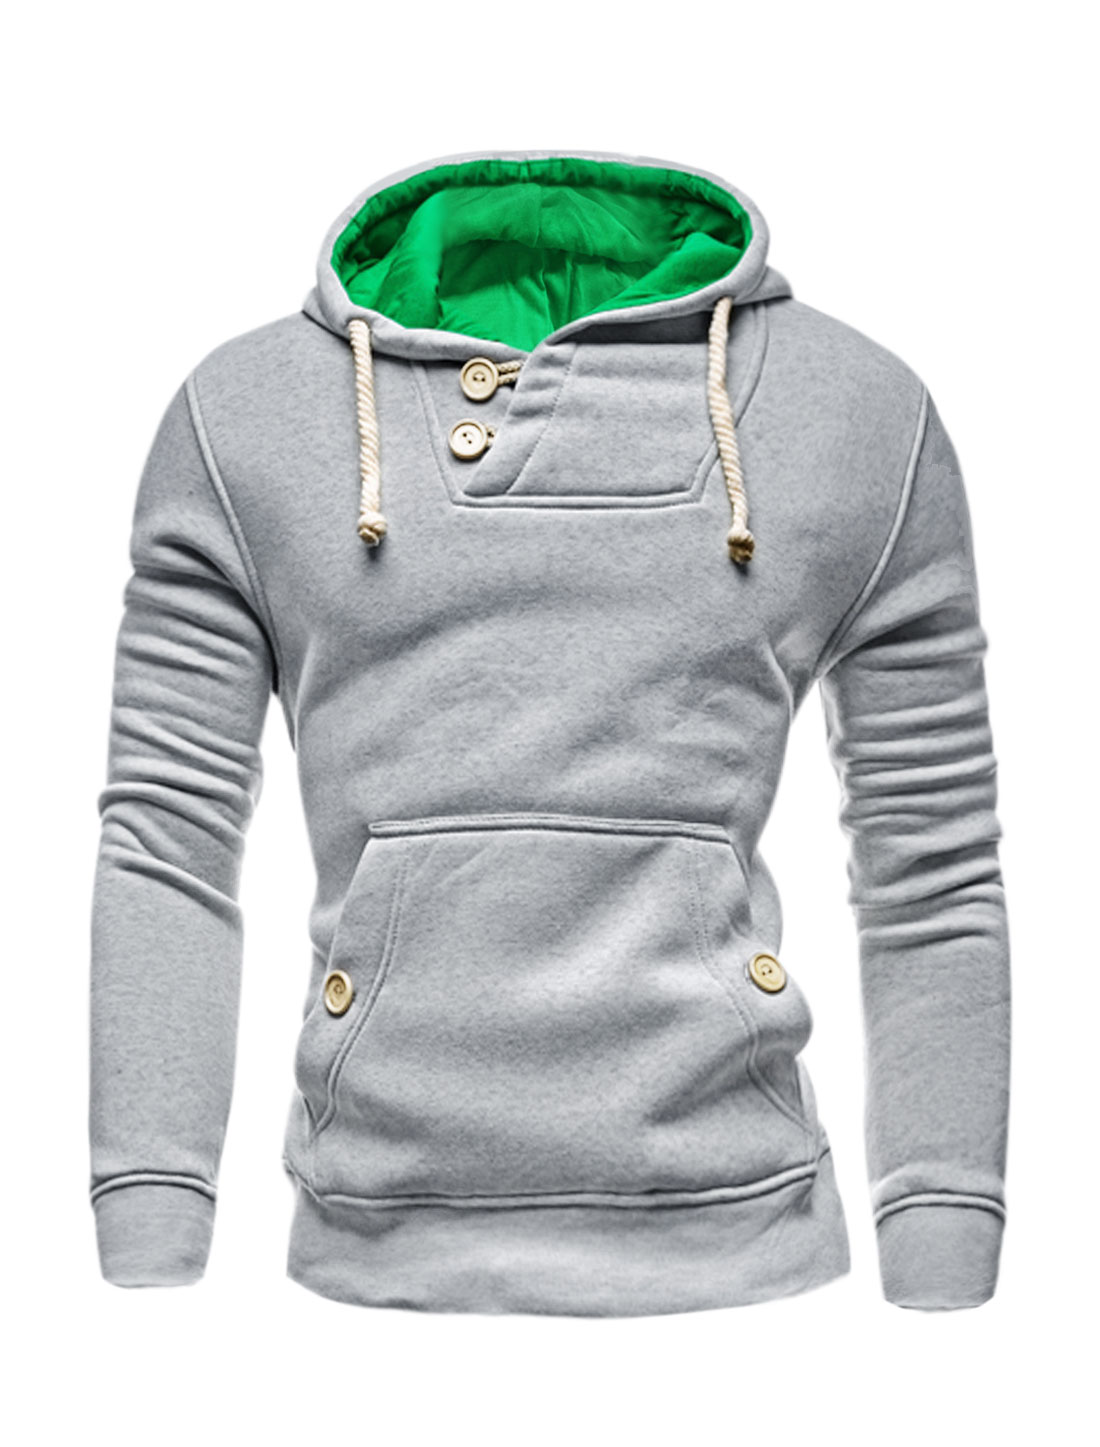 Men Button Loop Closure Kangaroo Pocket Slim Fit Hooded Sweatshirt Light Gray M